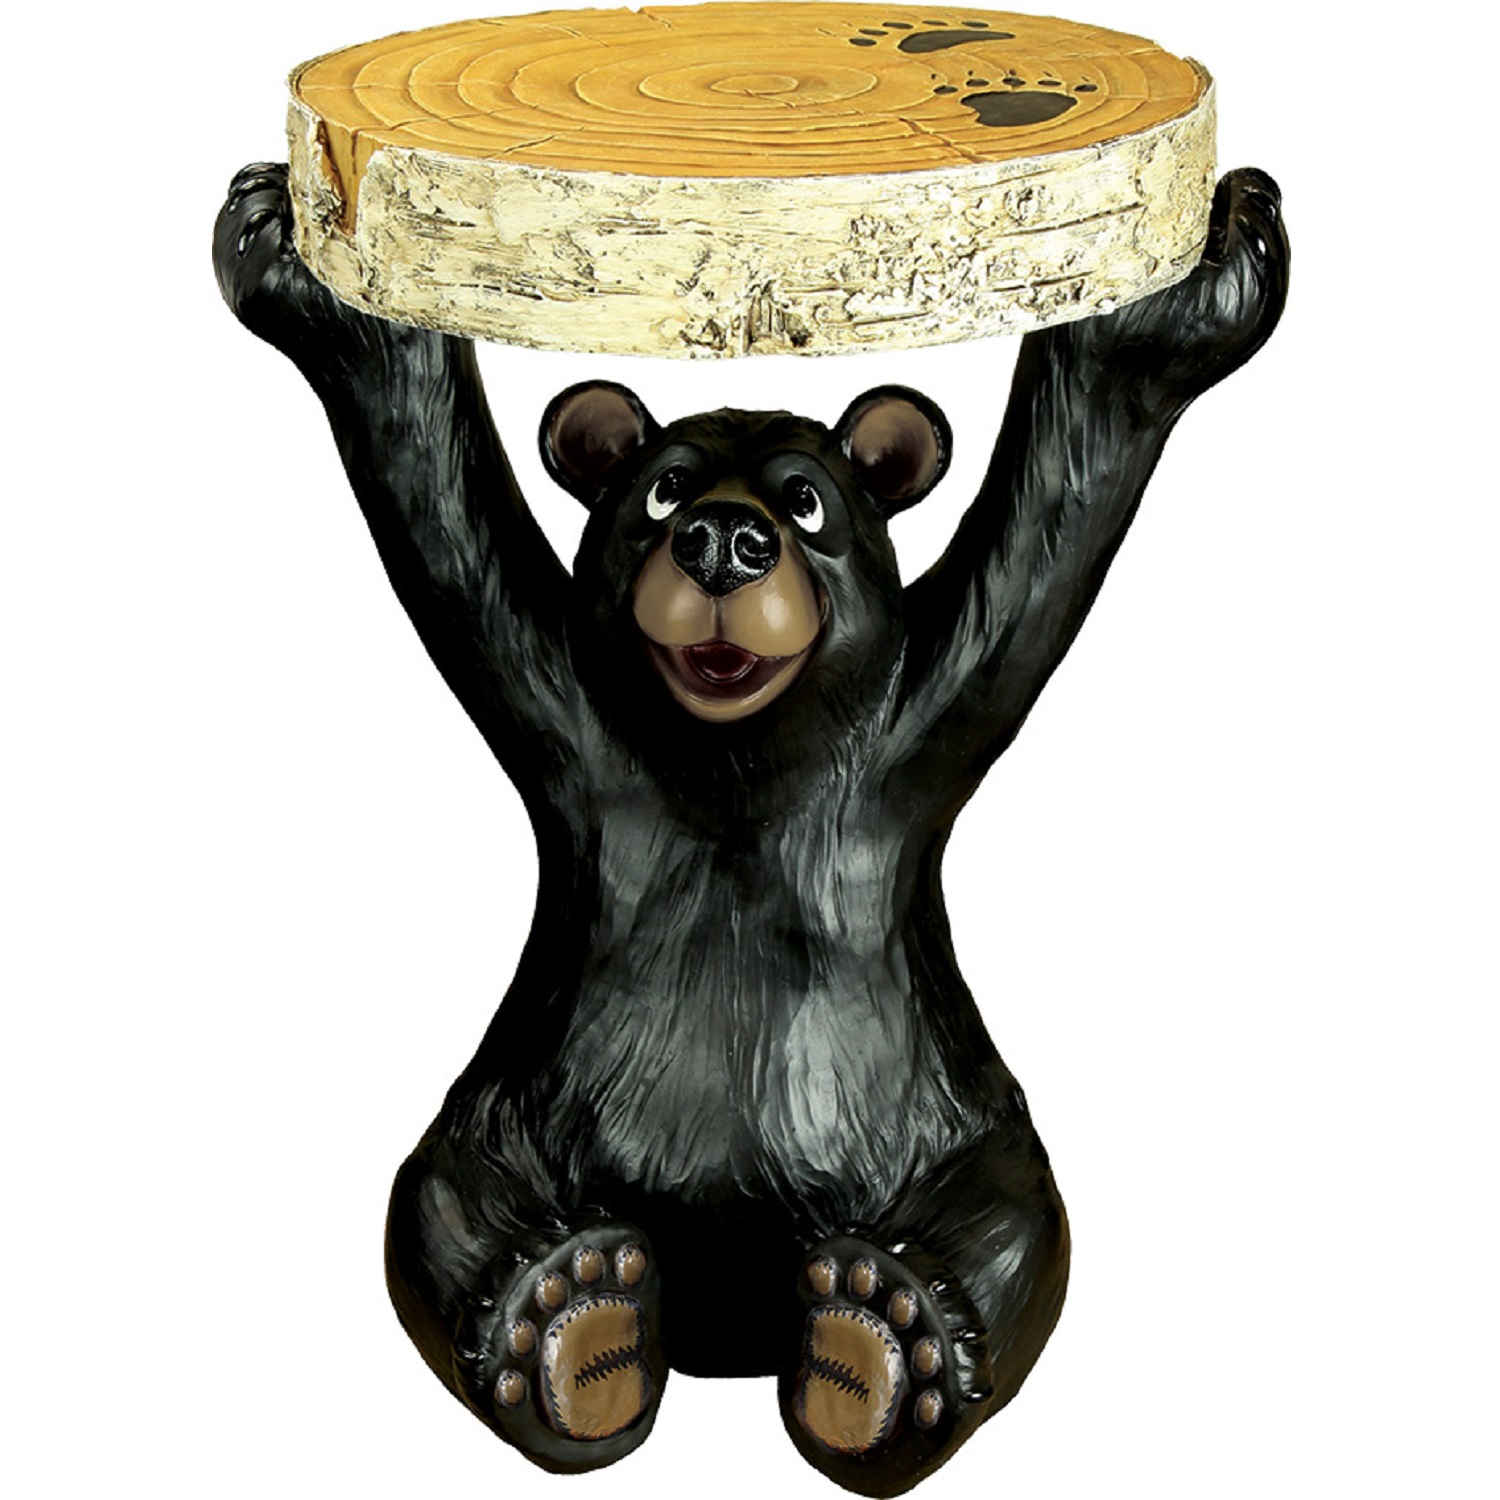 rivers edge black bear end table tables thomasville impressions bedroom furniture lazy boy chair warranty lounge cushions morcilla pittsburgh mainstays floor lamp assembly